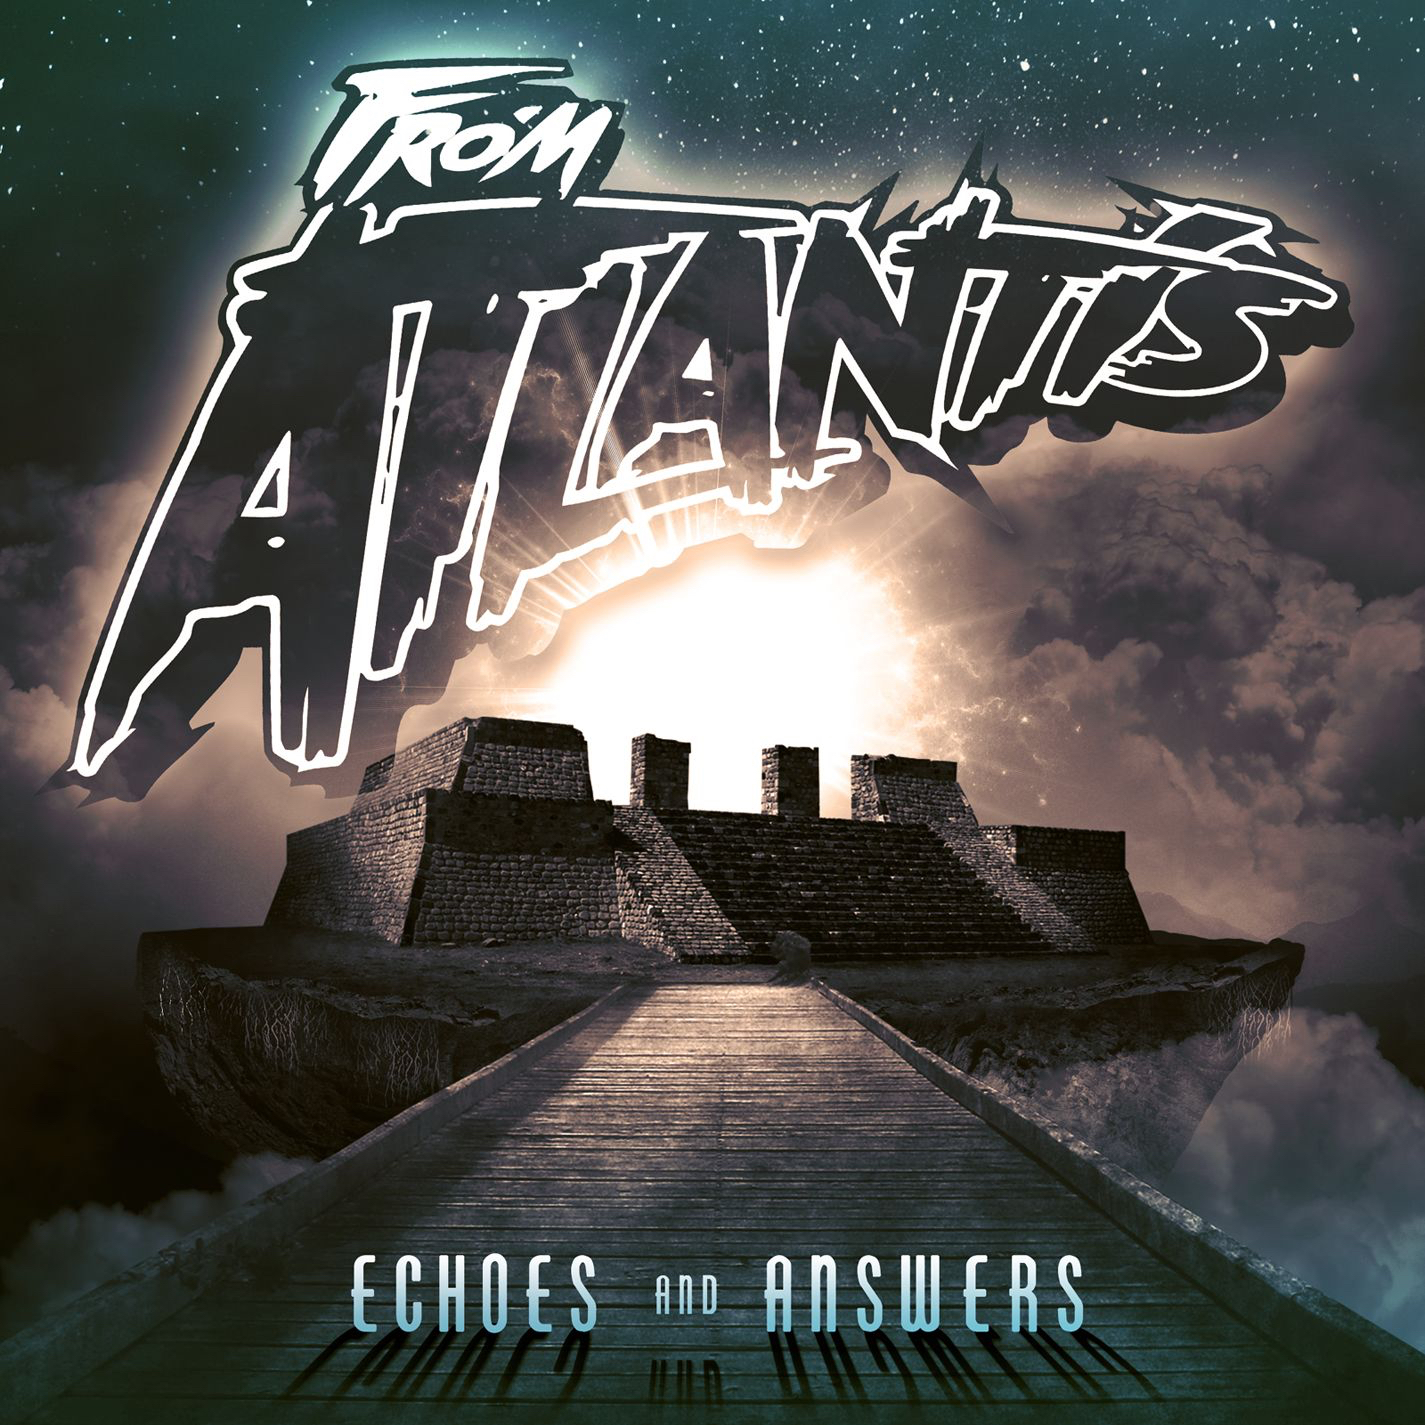 From Atlantis - Echoes and Answers [EP] (2011)